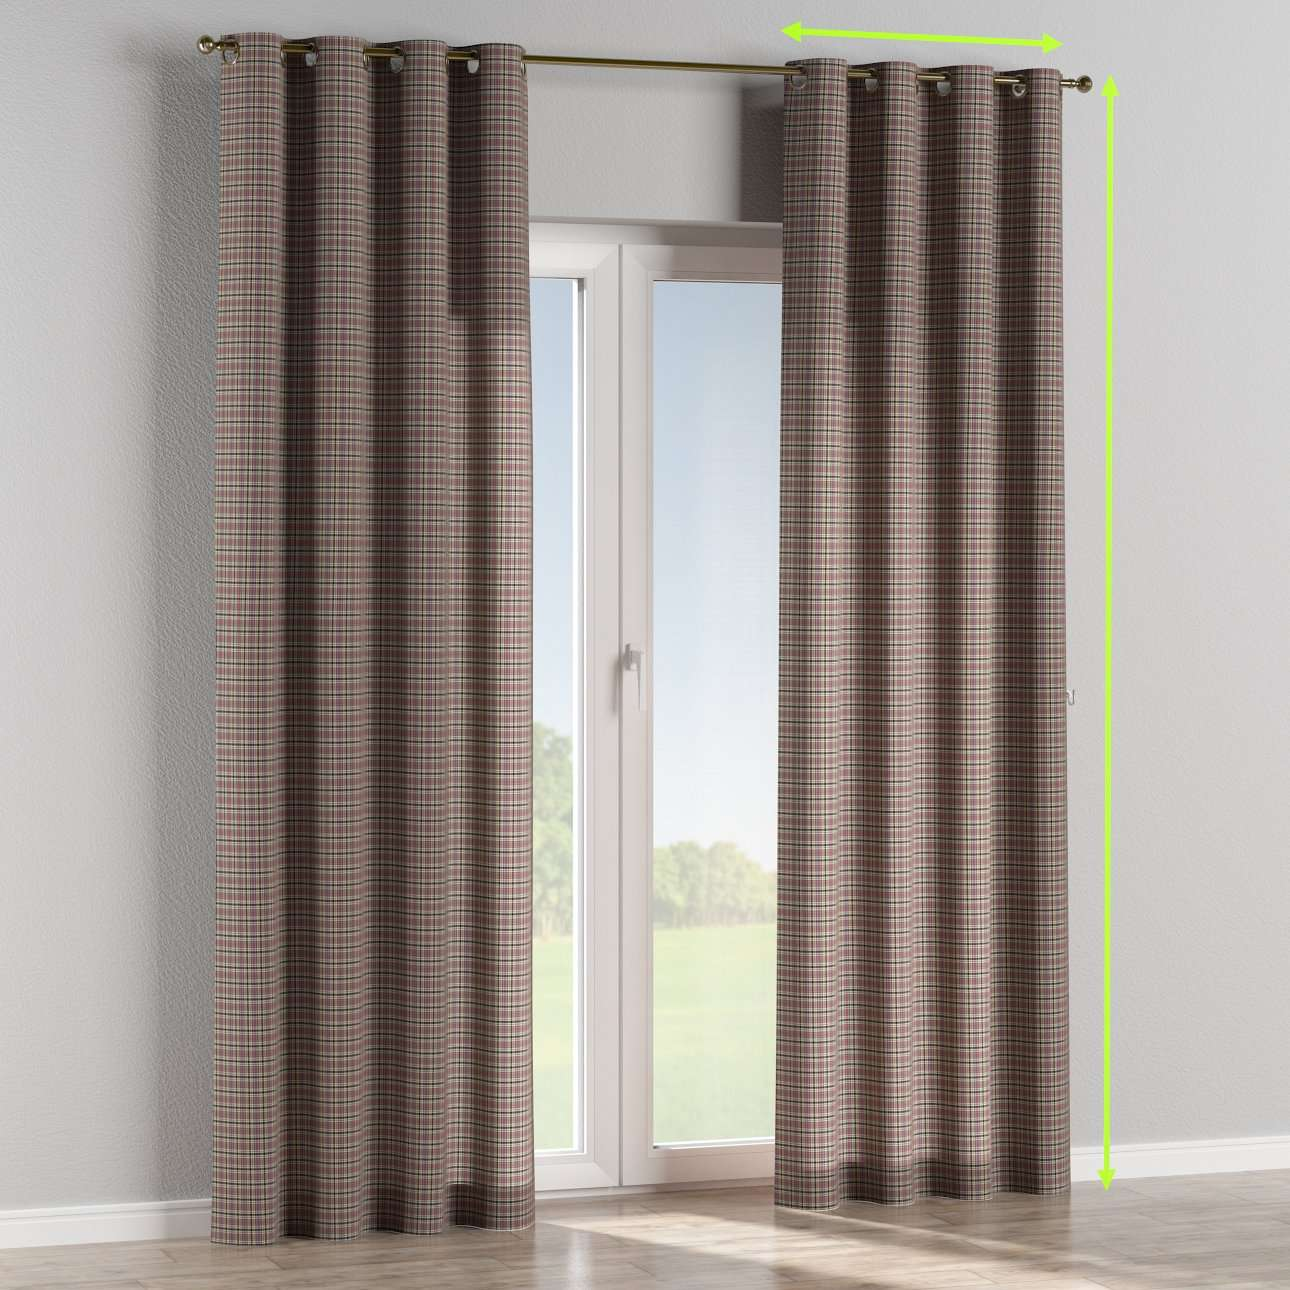 Eyelet curtains in collection Bristol, fabric: 126-32